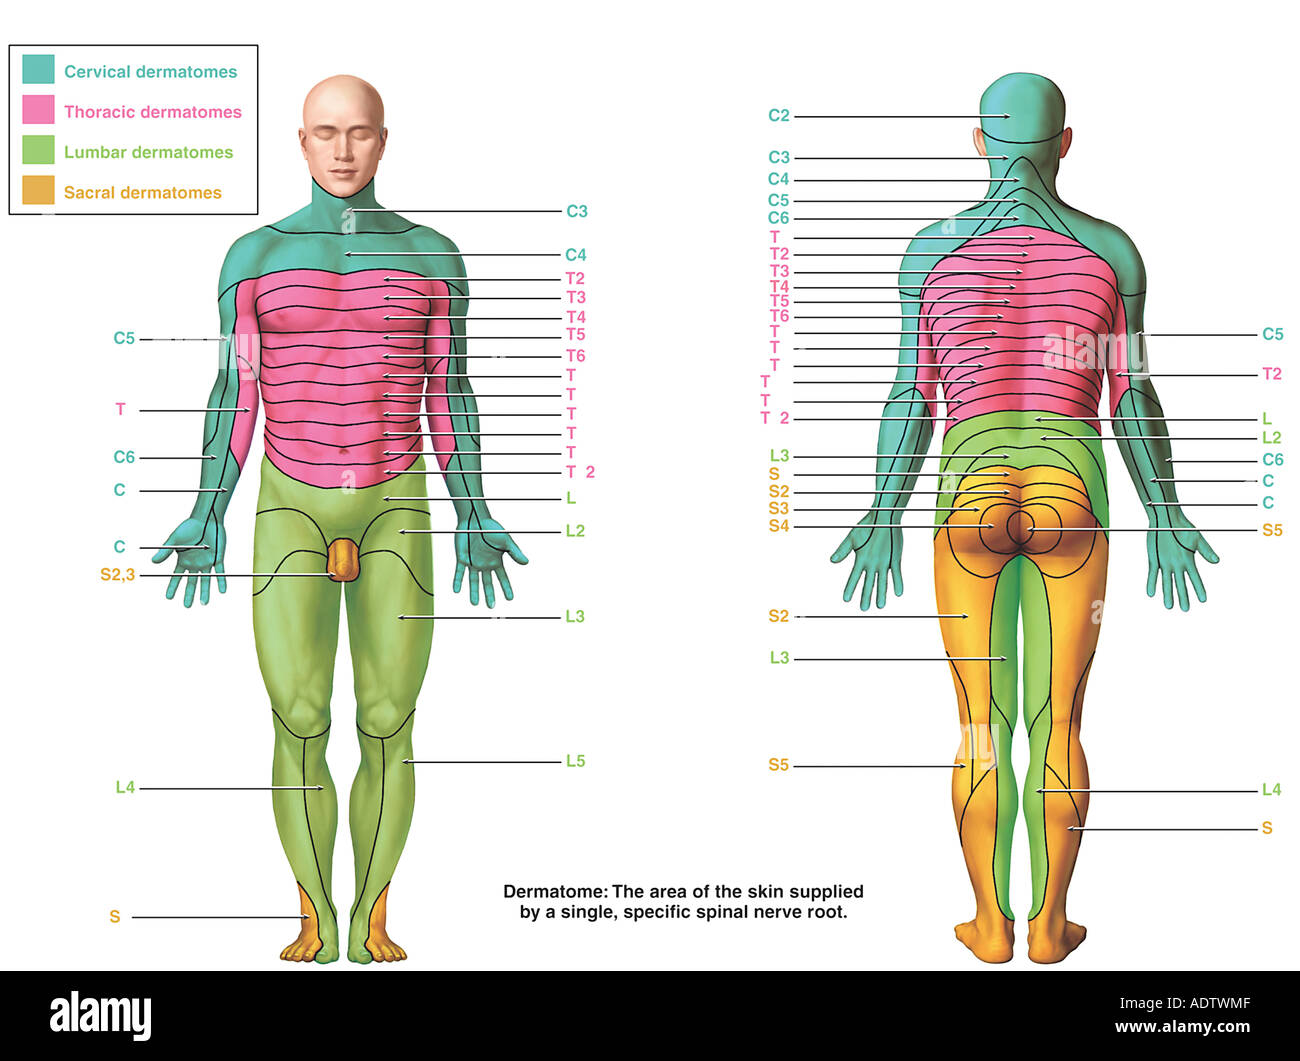 The Dermatomes Stock Photo: 7710478 - Alamy on myotomal map, spinal map, us national parks map, deciduous map, somatosensory system, peripheral nerve field, brachial plexus map, blood–brain barrier, sclerotome map, dermatomal distribution map, lumbosacral plexus map, mtdna haplogroup migration map, nerve map, montserrat map, acupuncture ear map, diffusion map, brachial plexus, nervous system map, cervical pain map, thalamus map, referred pain map, myotome map, st. paul light rail map,